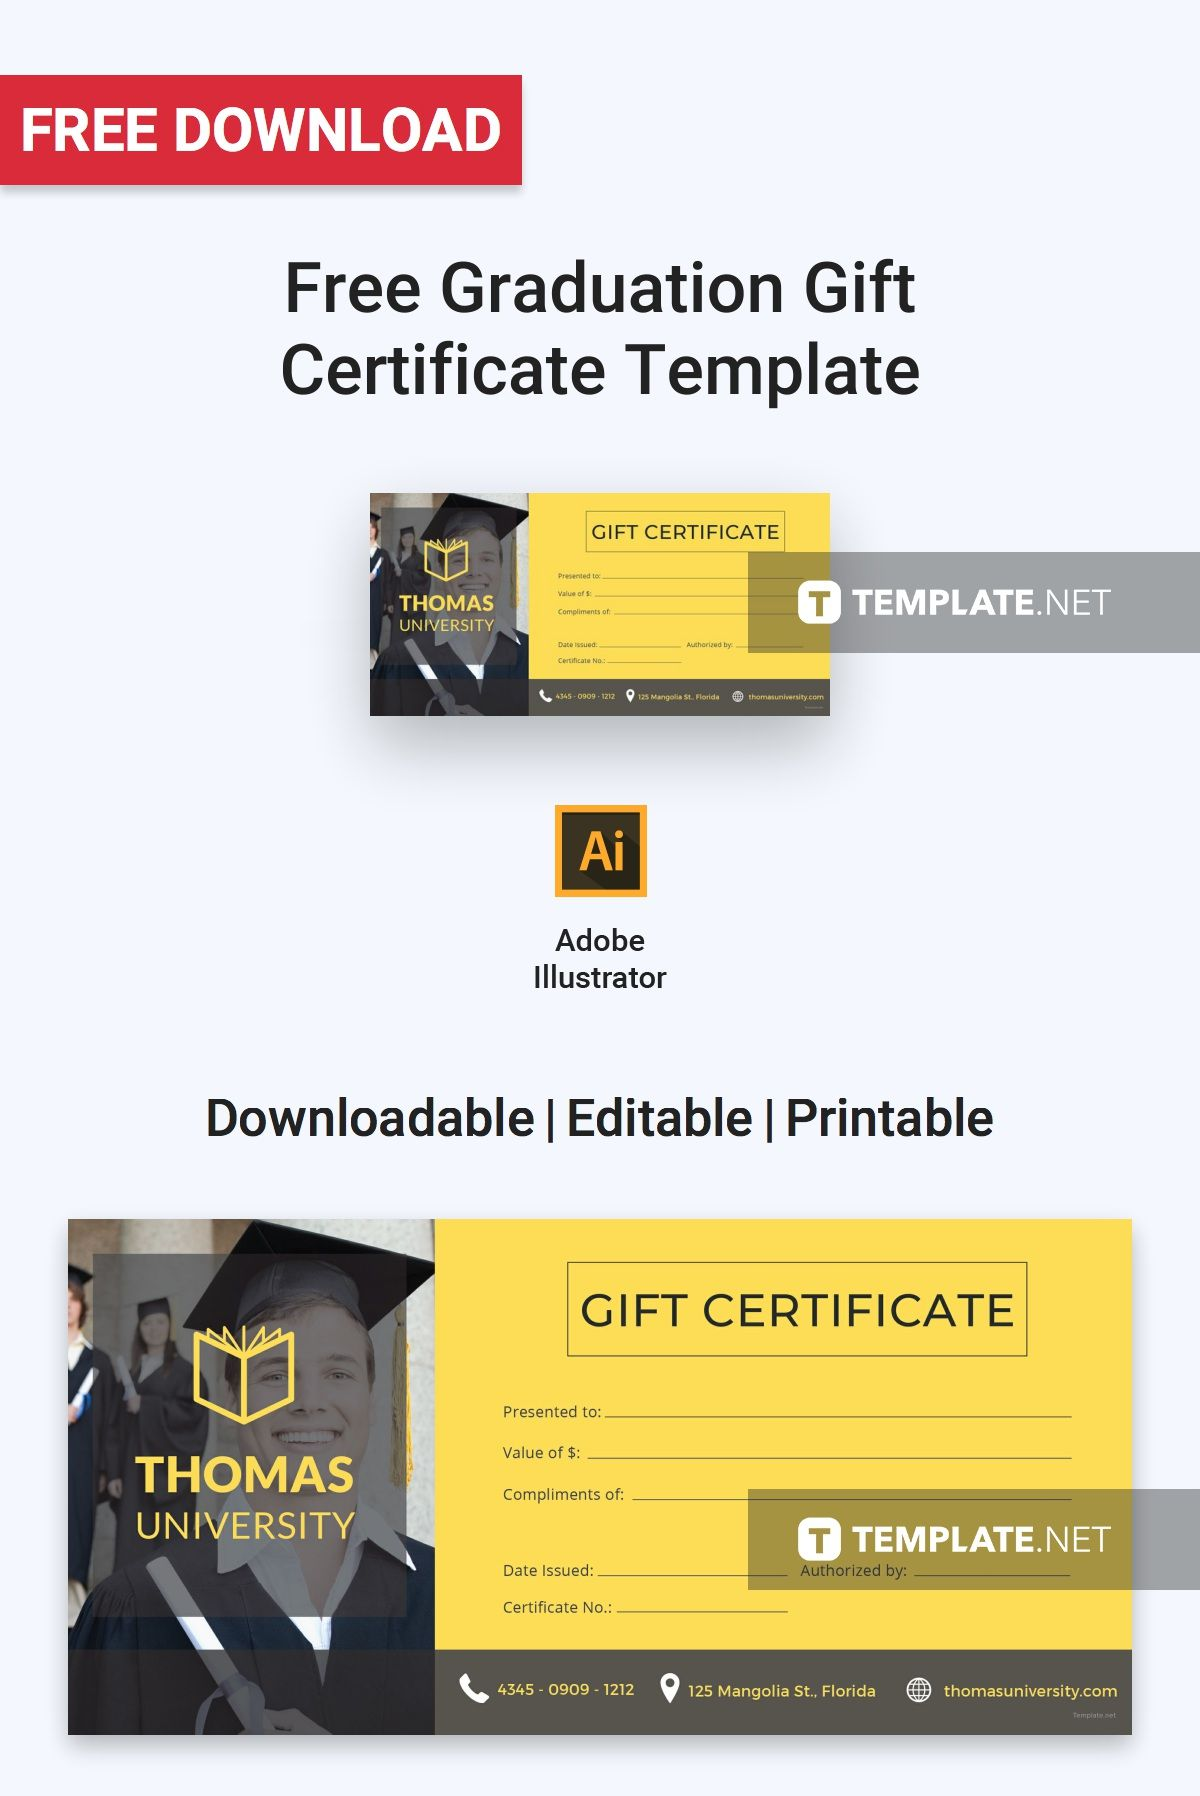 Free graduation gift certificate gift certificate template gift free graduation gift certificate gift certificate template gift certificates and certificate yelopaper Images